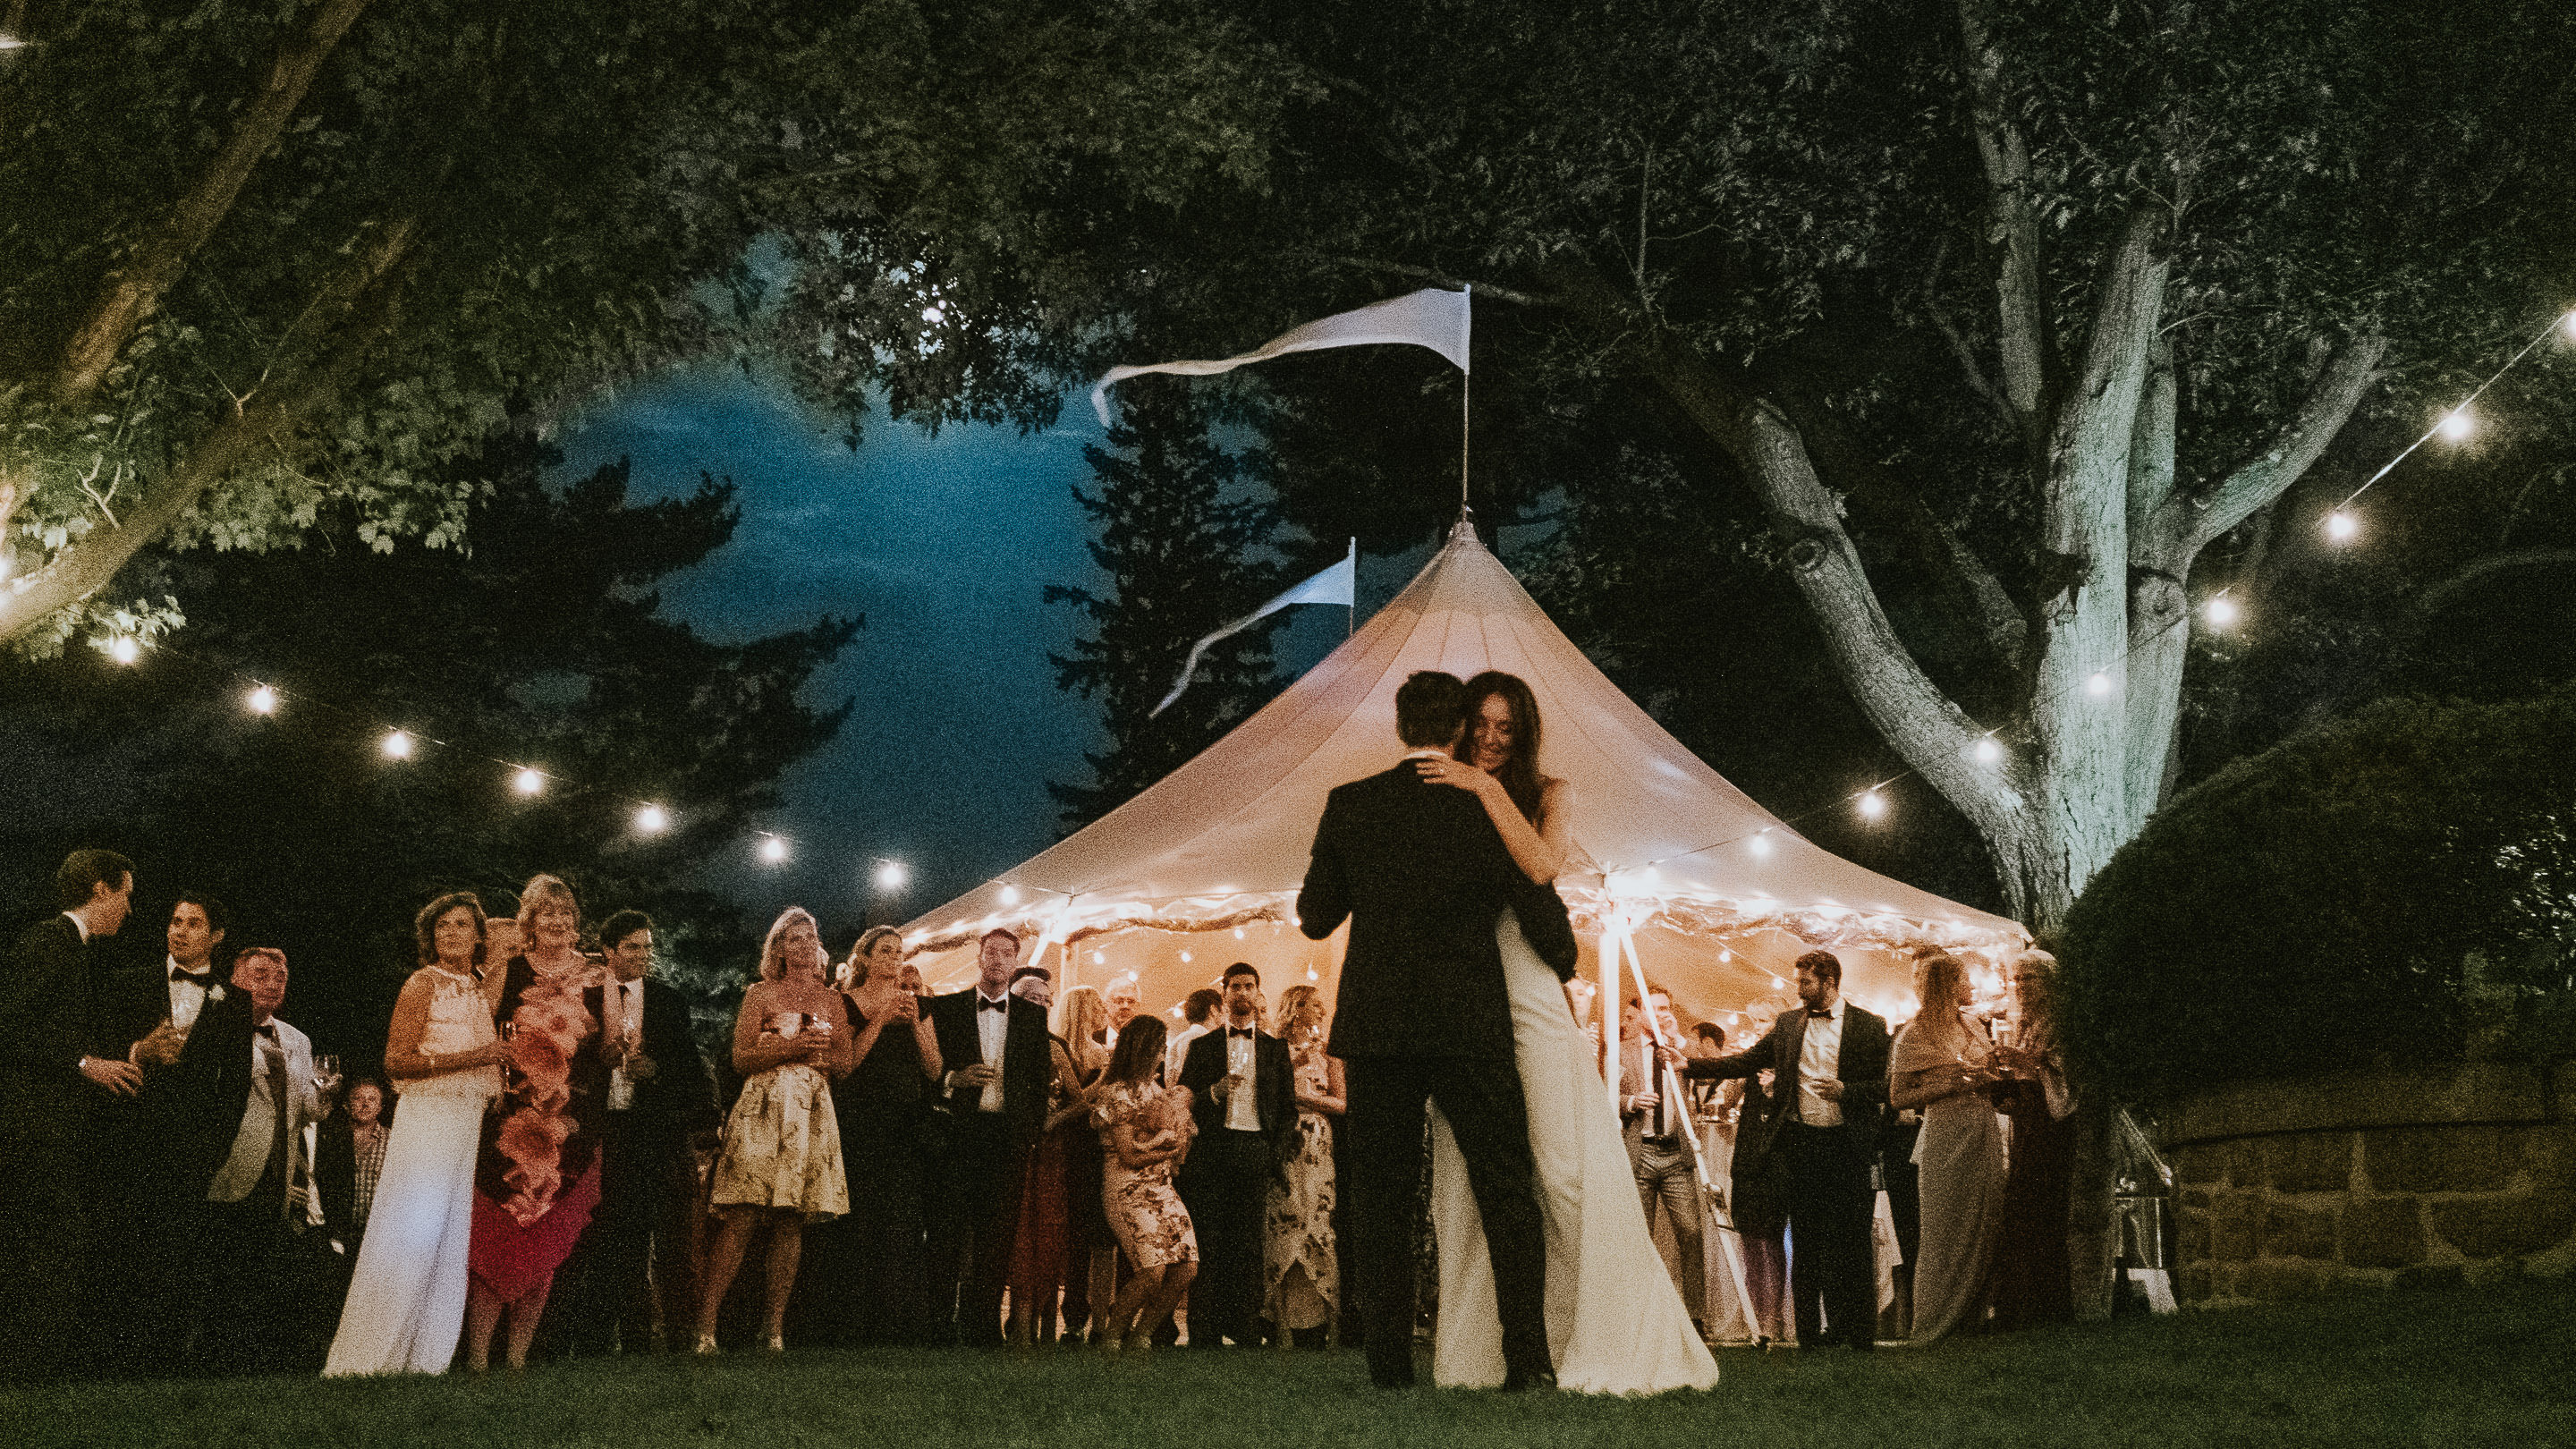 First dance against pink wedding tent - photo by Joel and Justyna